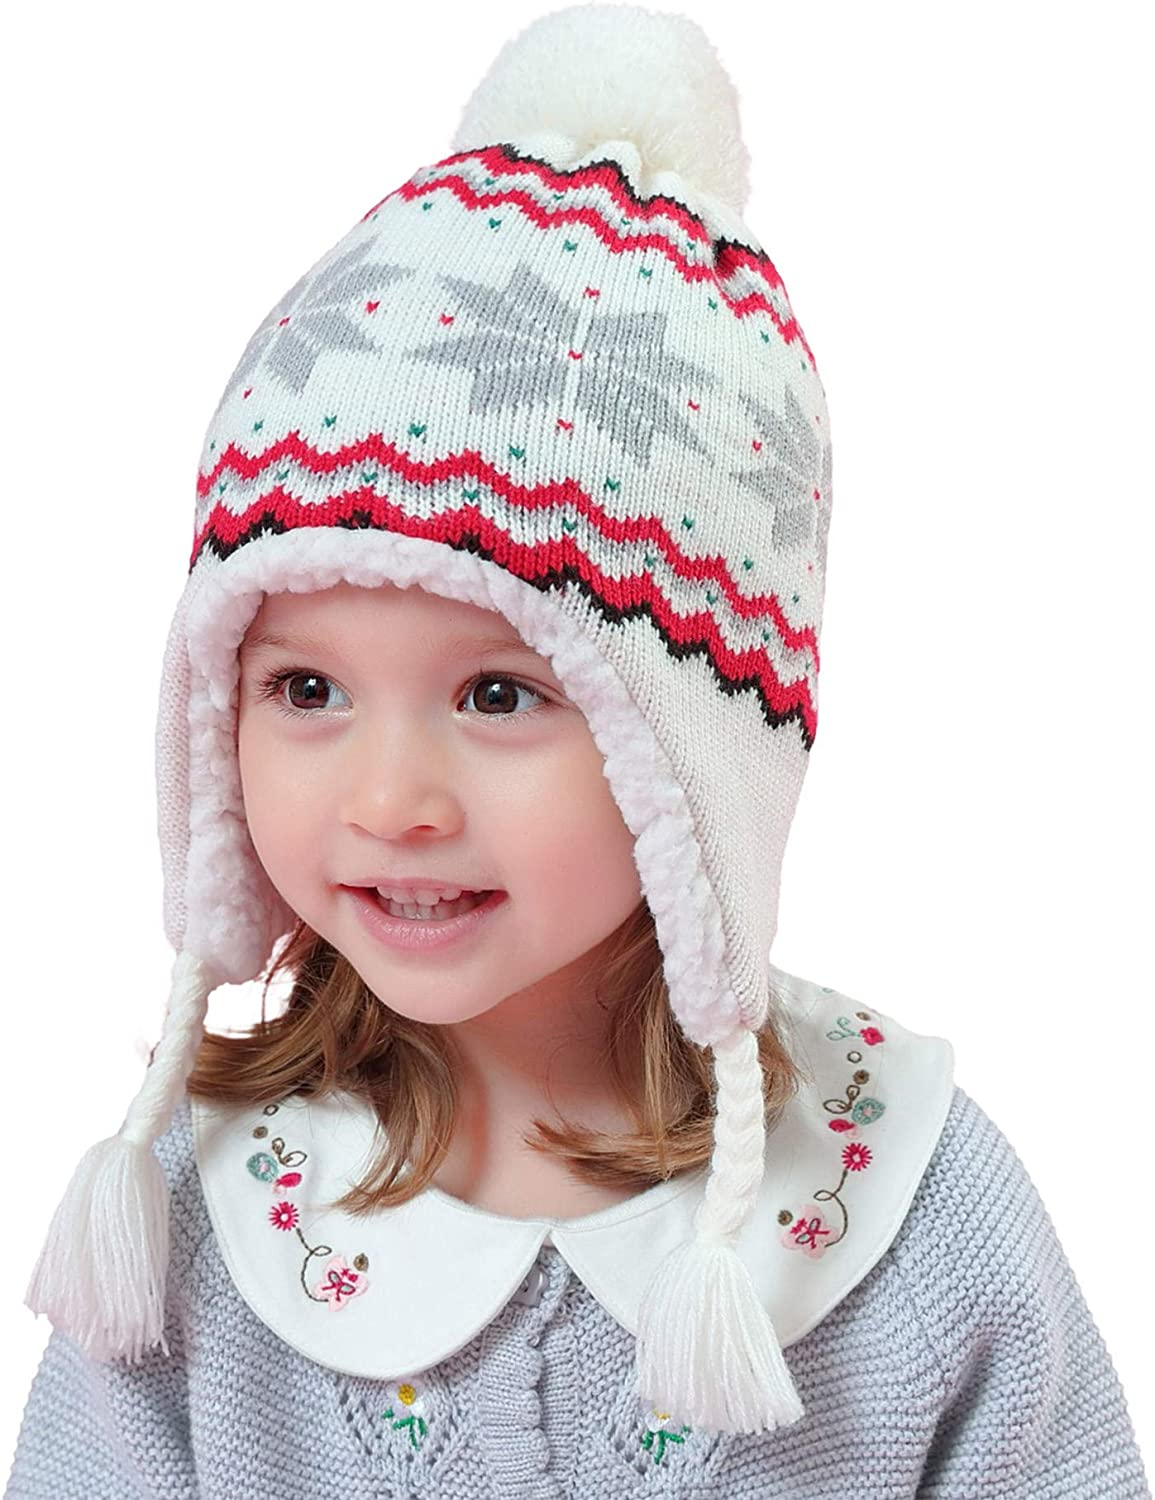 Connectyle Toddler Infant Baby Sherpa Lined Knit Kids Hat with Earflap Winter Hat